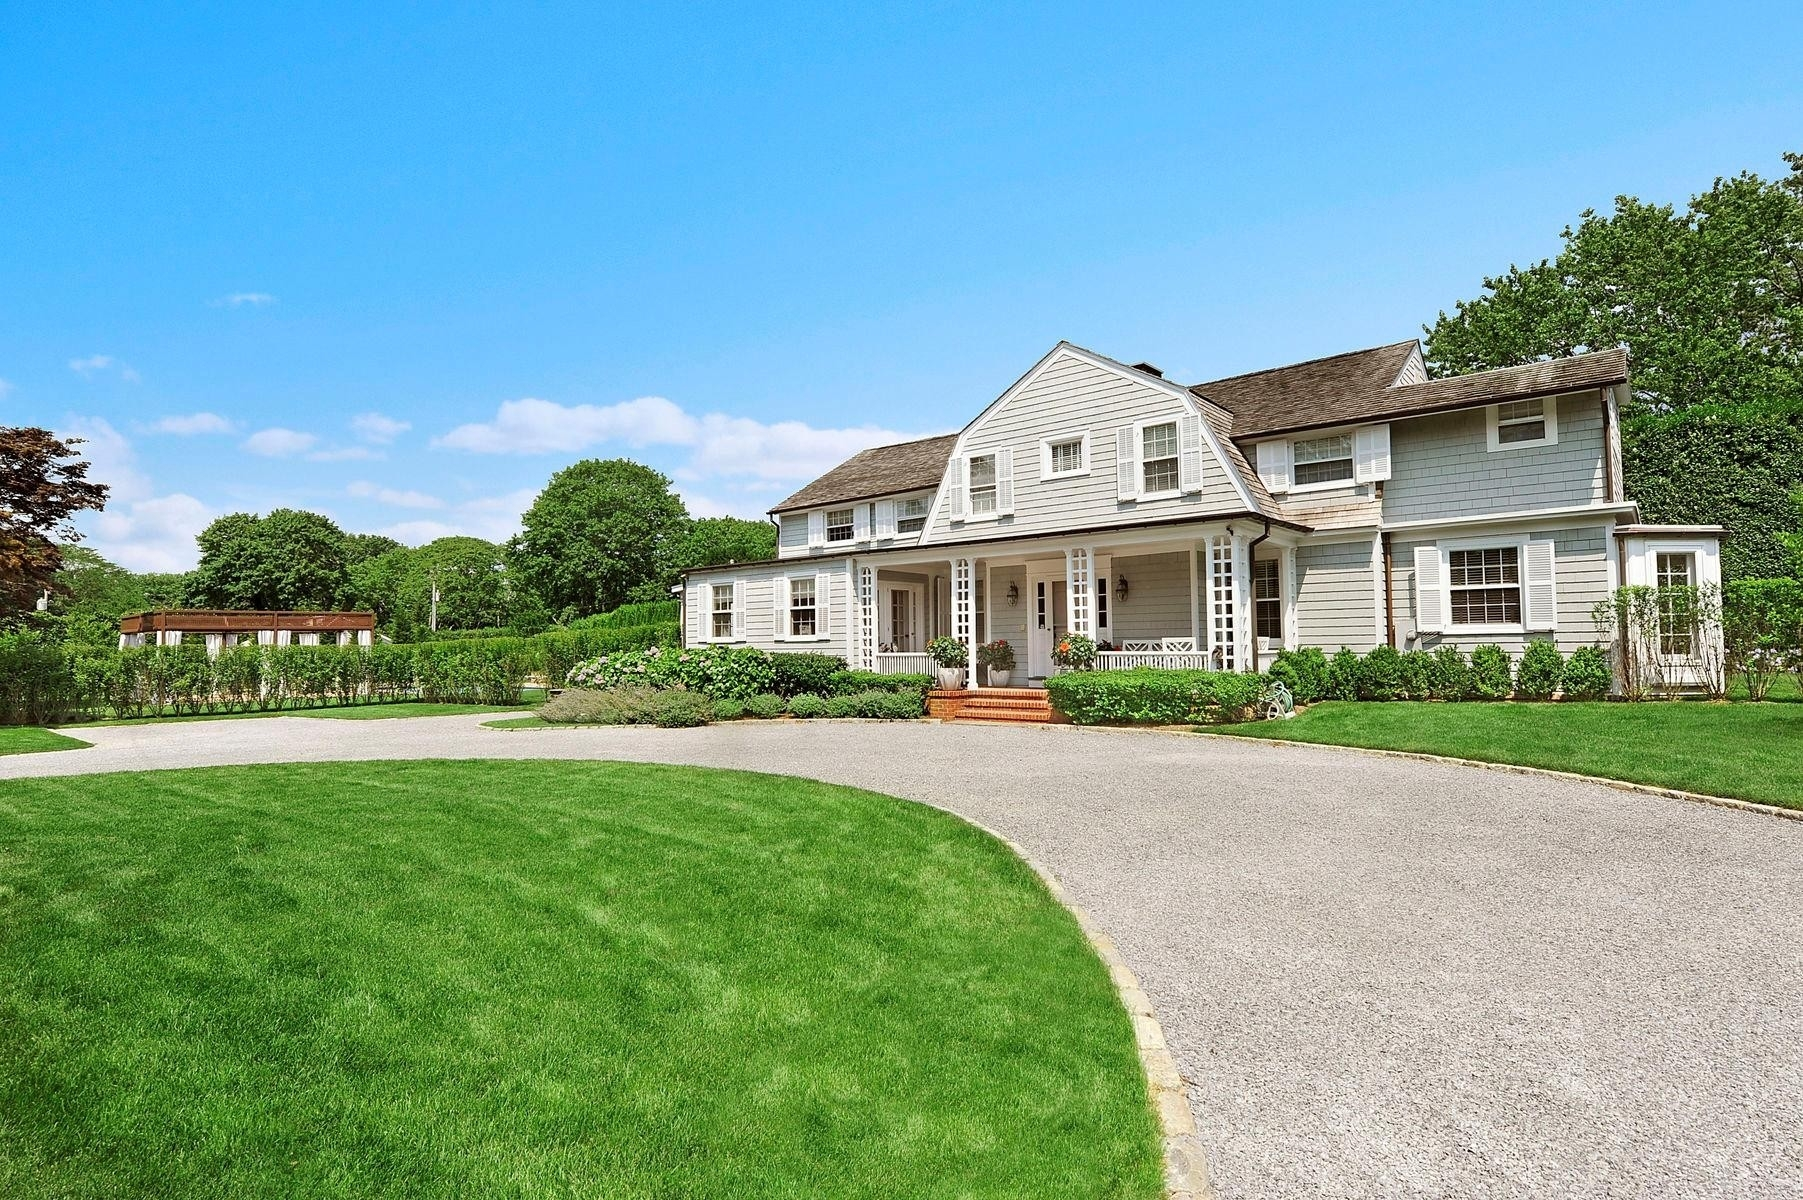 Single Family Home at Southampton Village, Southampton, NY 11968